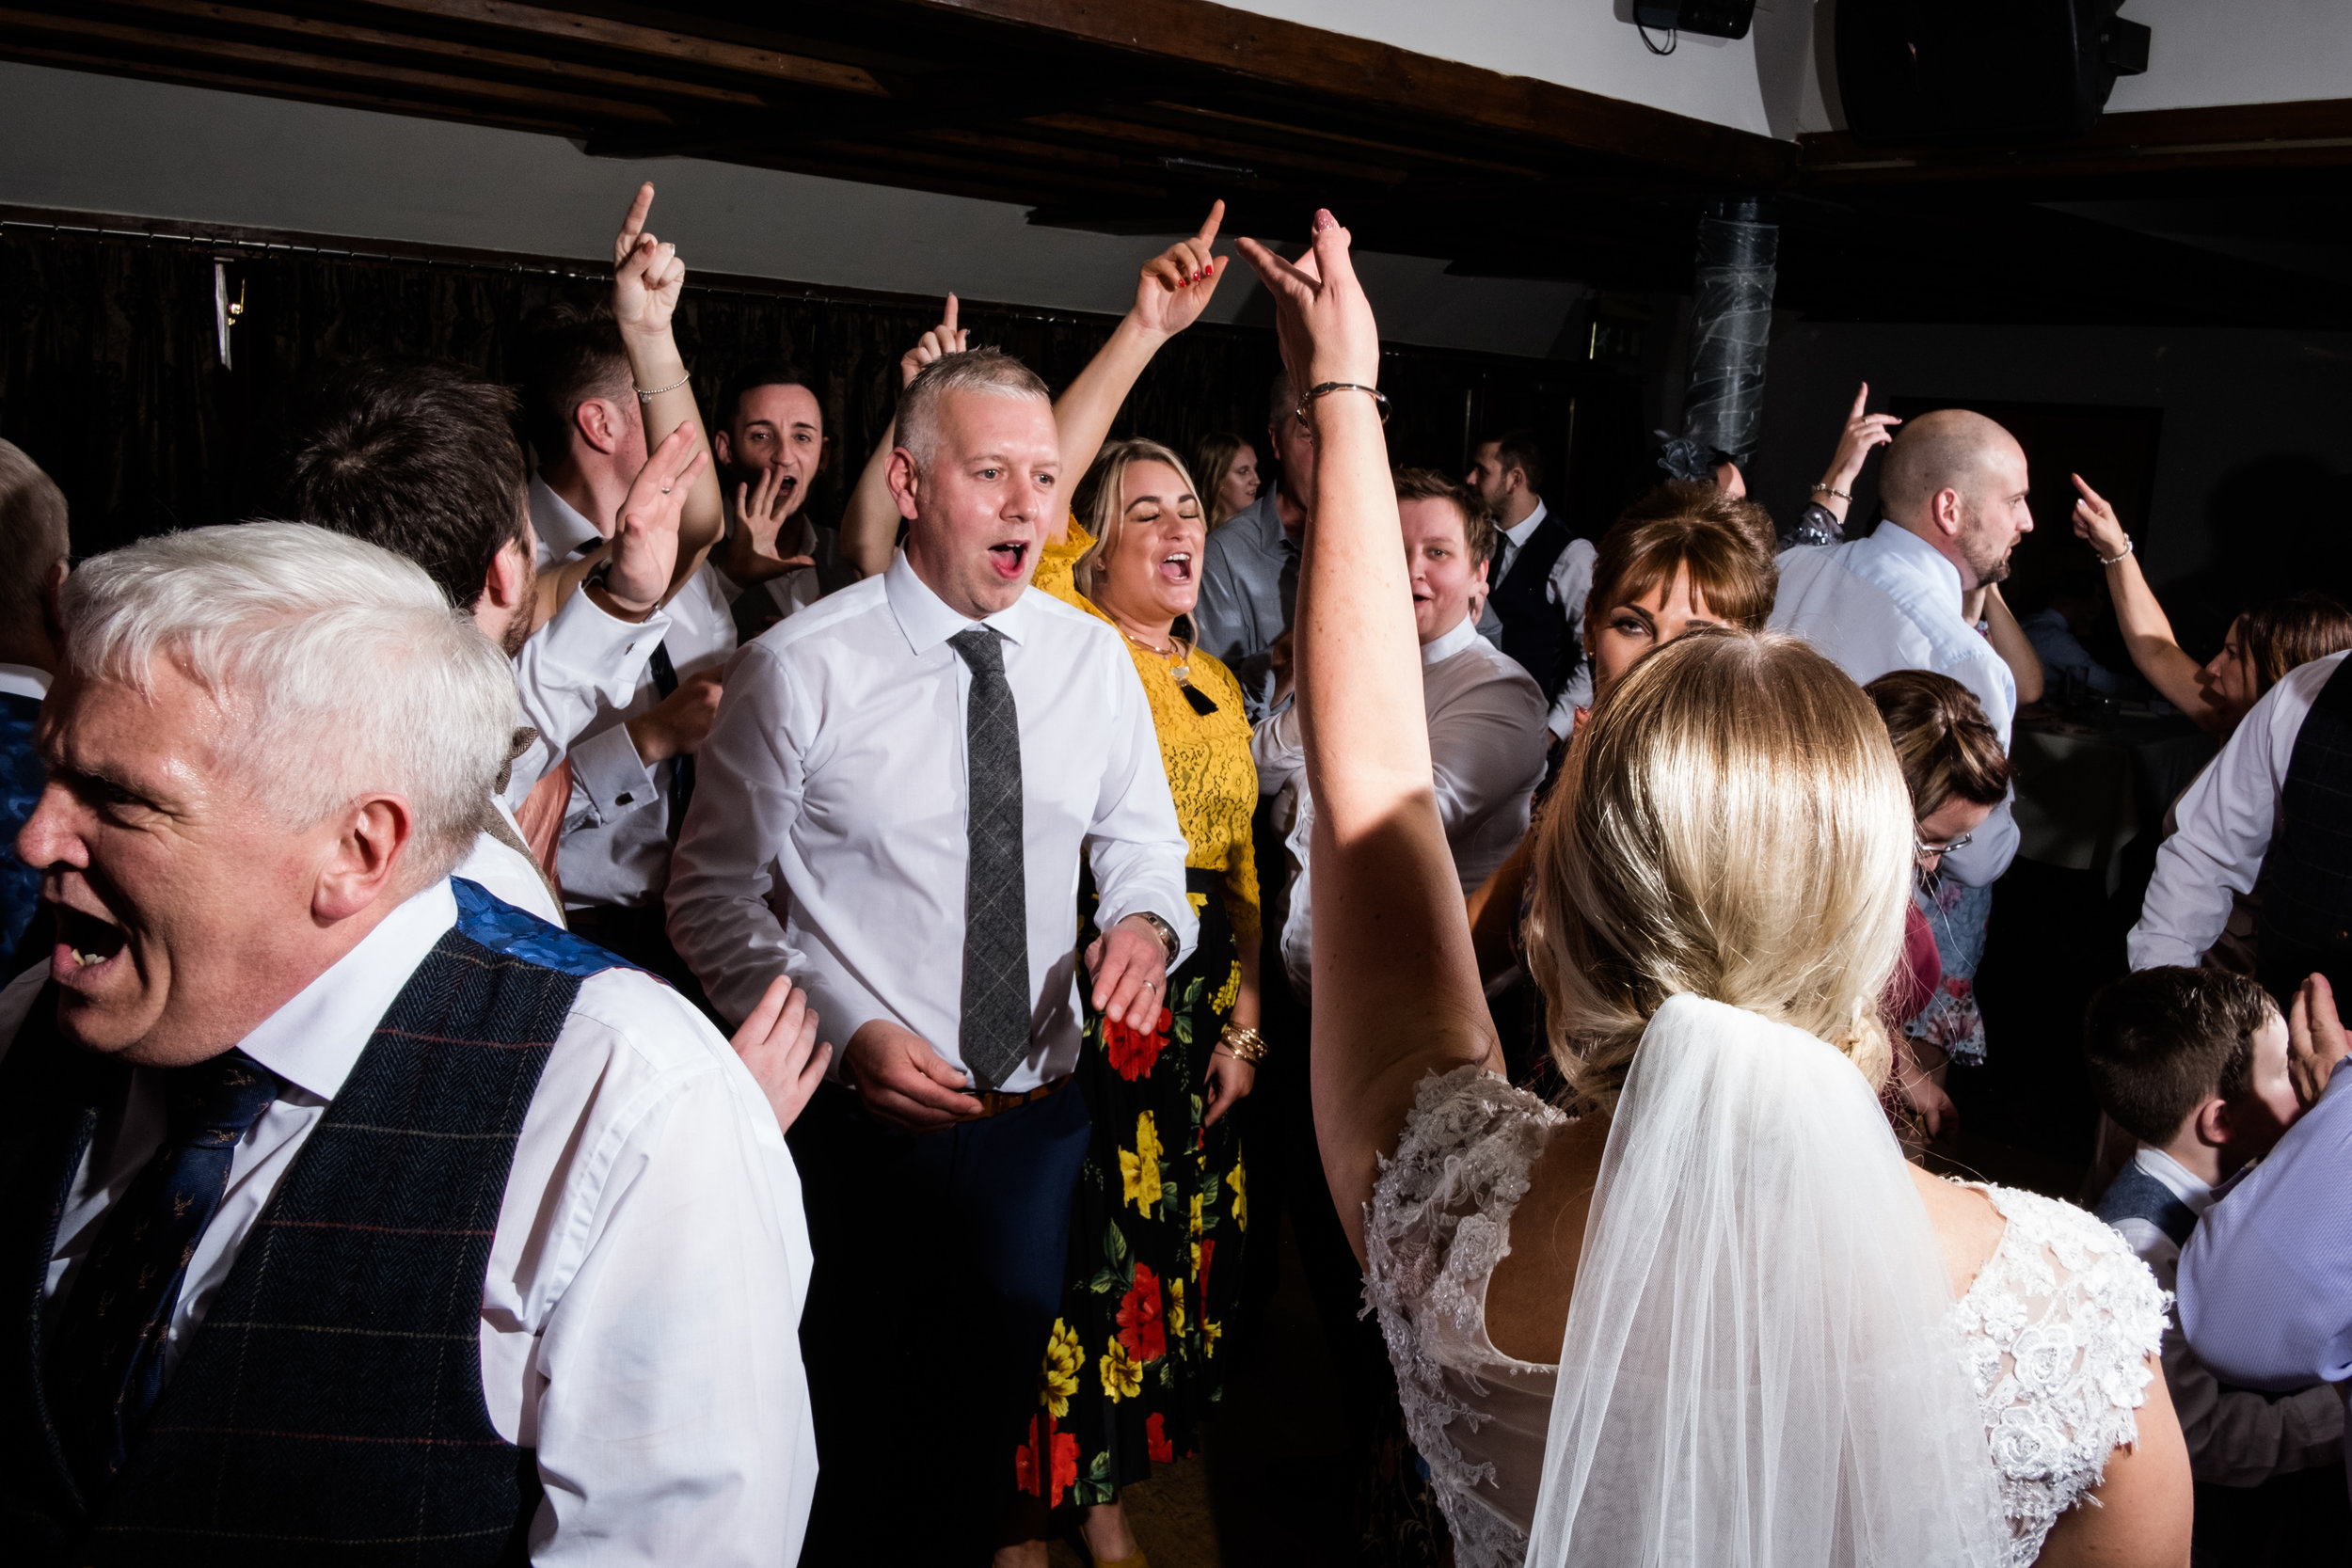 Autumn Wedding Photography at The Three Horseshoes, Blackshaw Moor, Staffordshire Moorlands - Jenny Harper-59.jpg